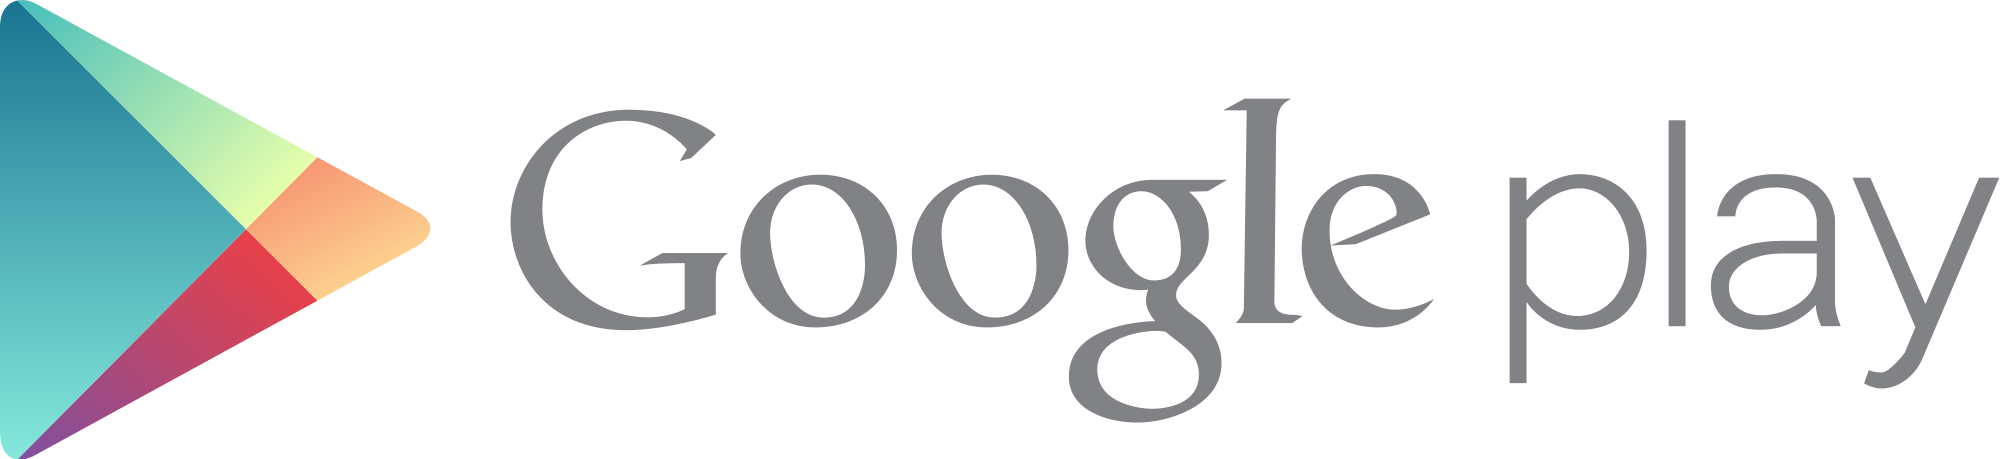 File svg wikimedia commons. Google play logo png